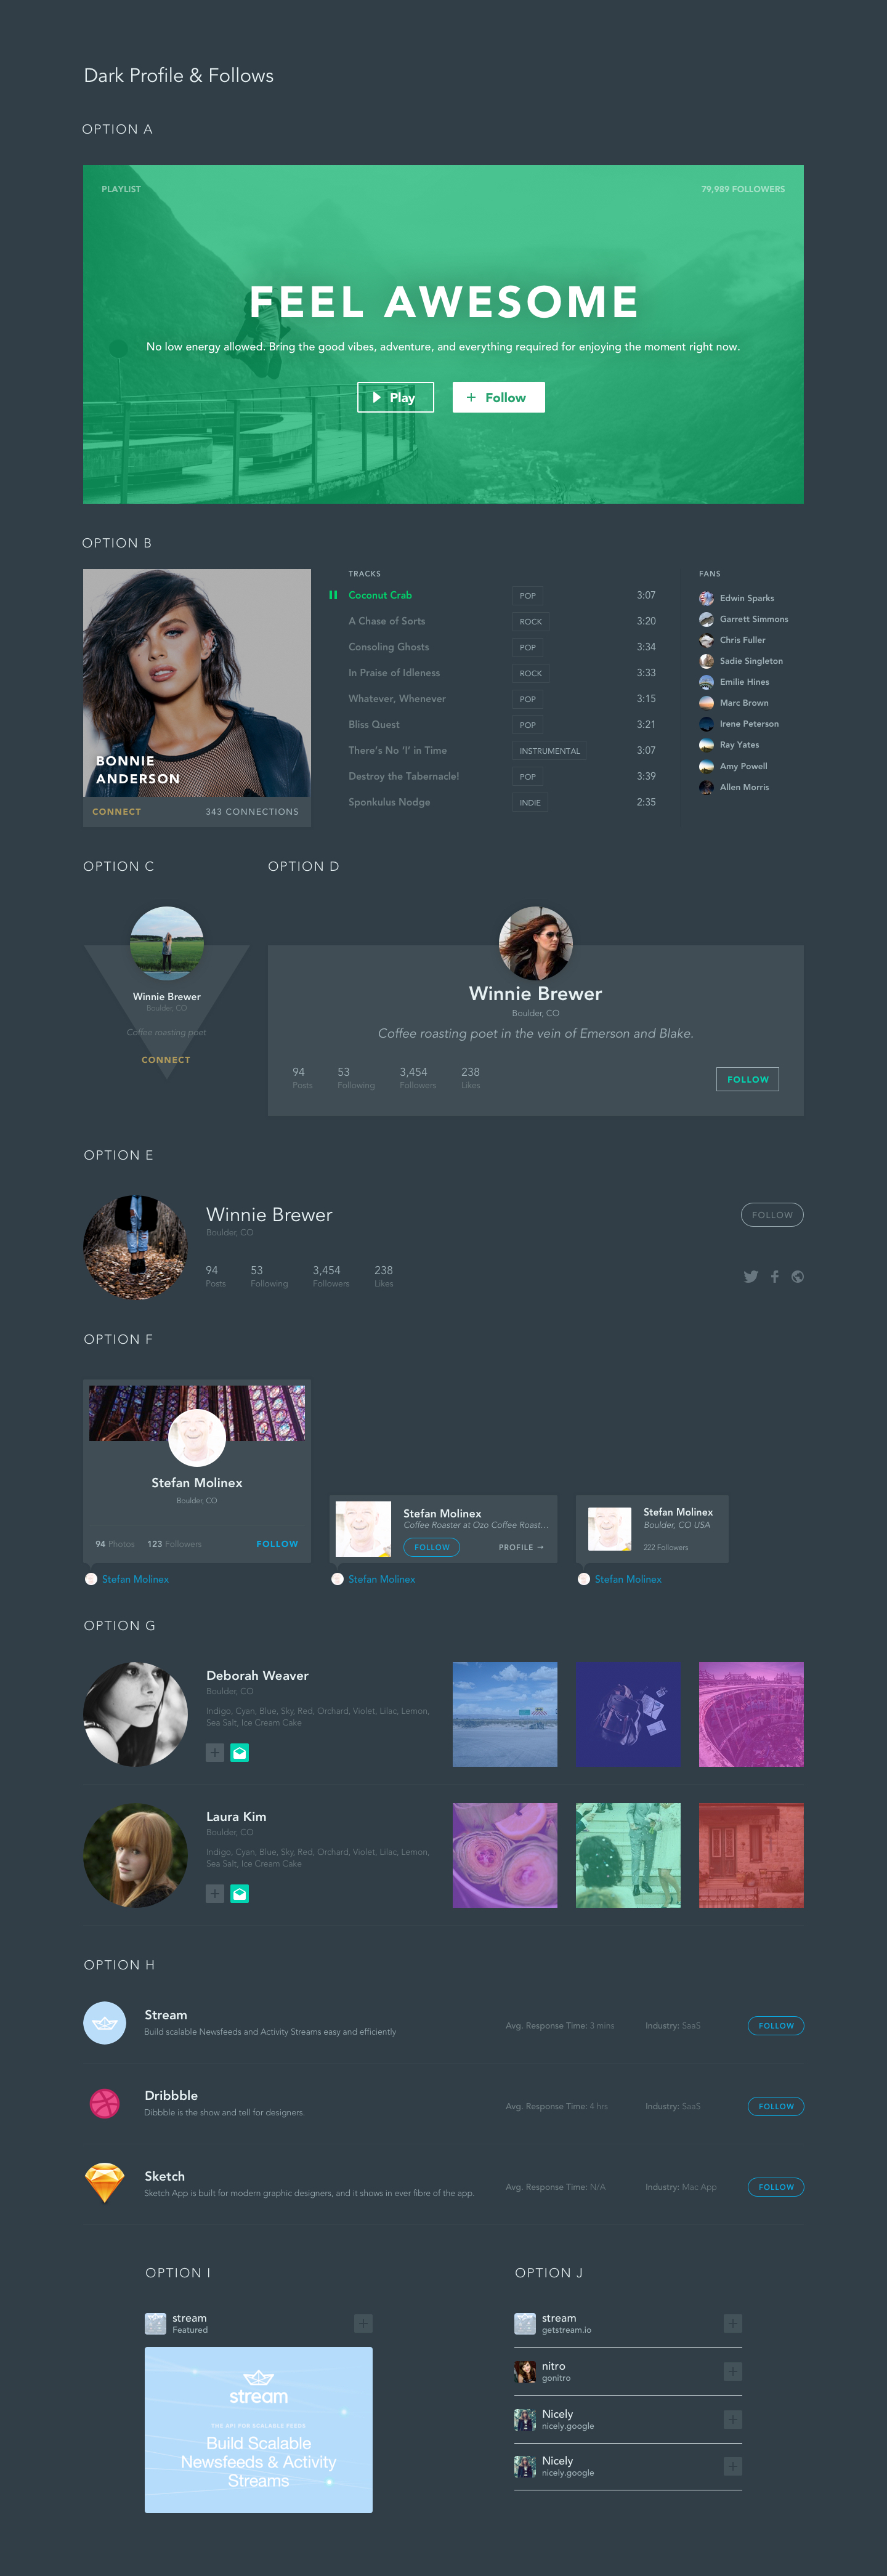 Based Feed UI Kit for Sketch - A versatile and comprehensive Feed UI Kit for Sketch. If you're looking to jumpstart your design with notifications and social feeds, this is the way to do it. Whether you want to build a feed like Twitter, Instagram, Spotify or Facebook's we have you covered with this UI Kit. We implemented designs that are minimalistic and ready to be easily customized.